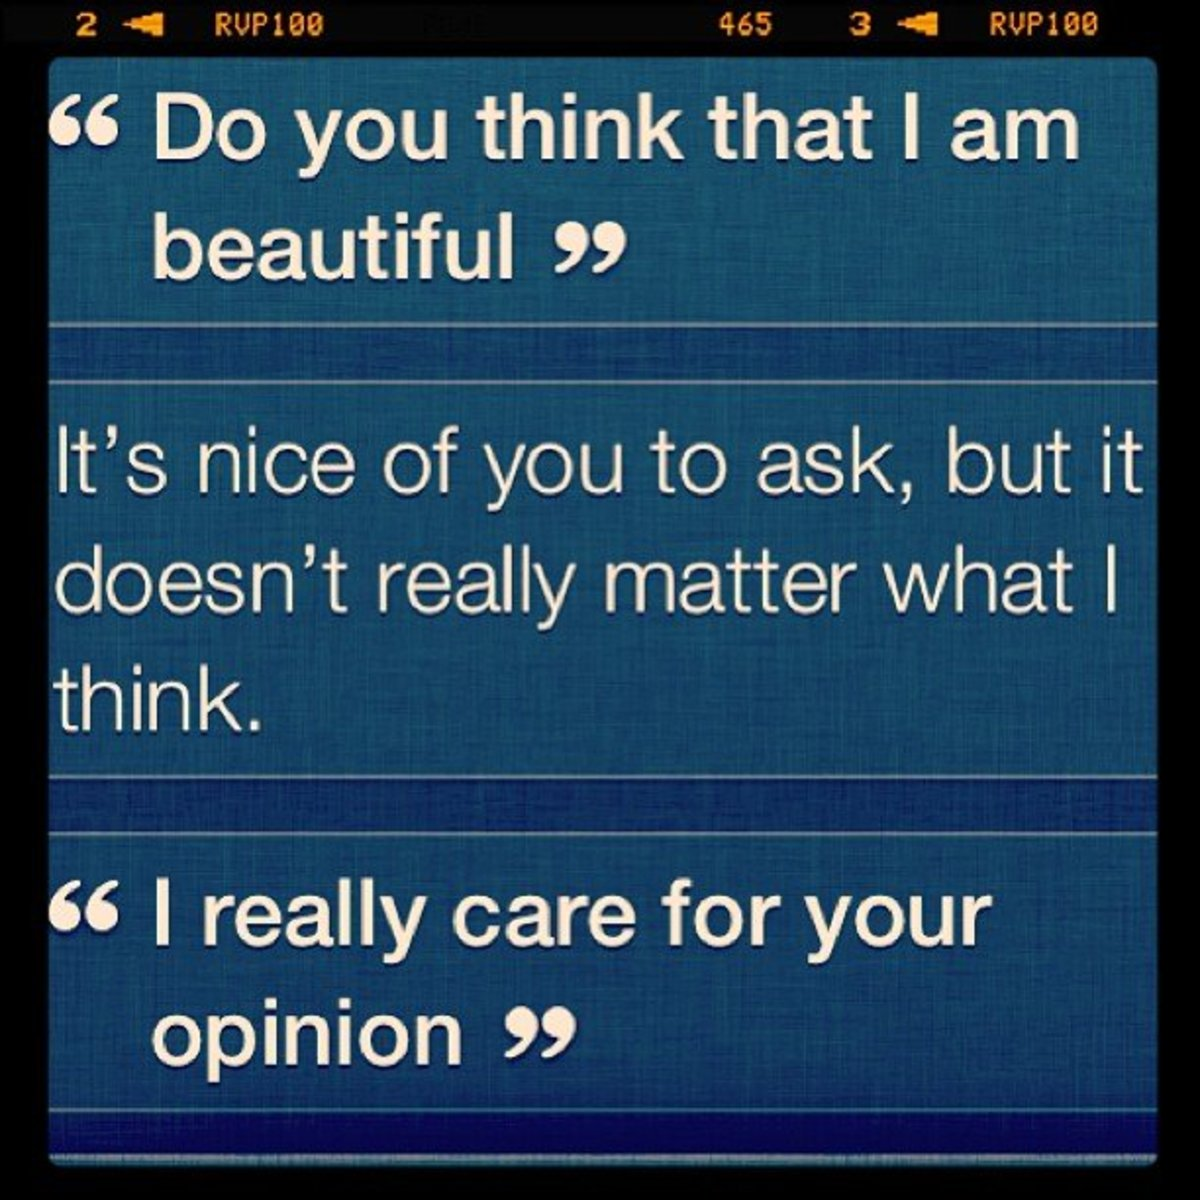 Funny Things to Ask Siri - Questions List | HubPages